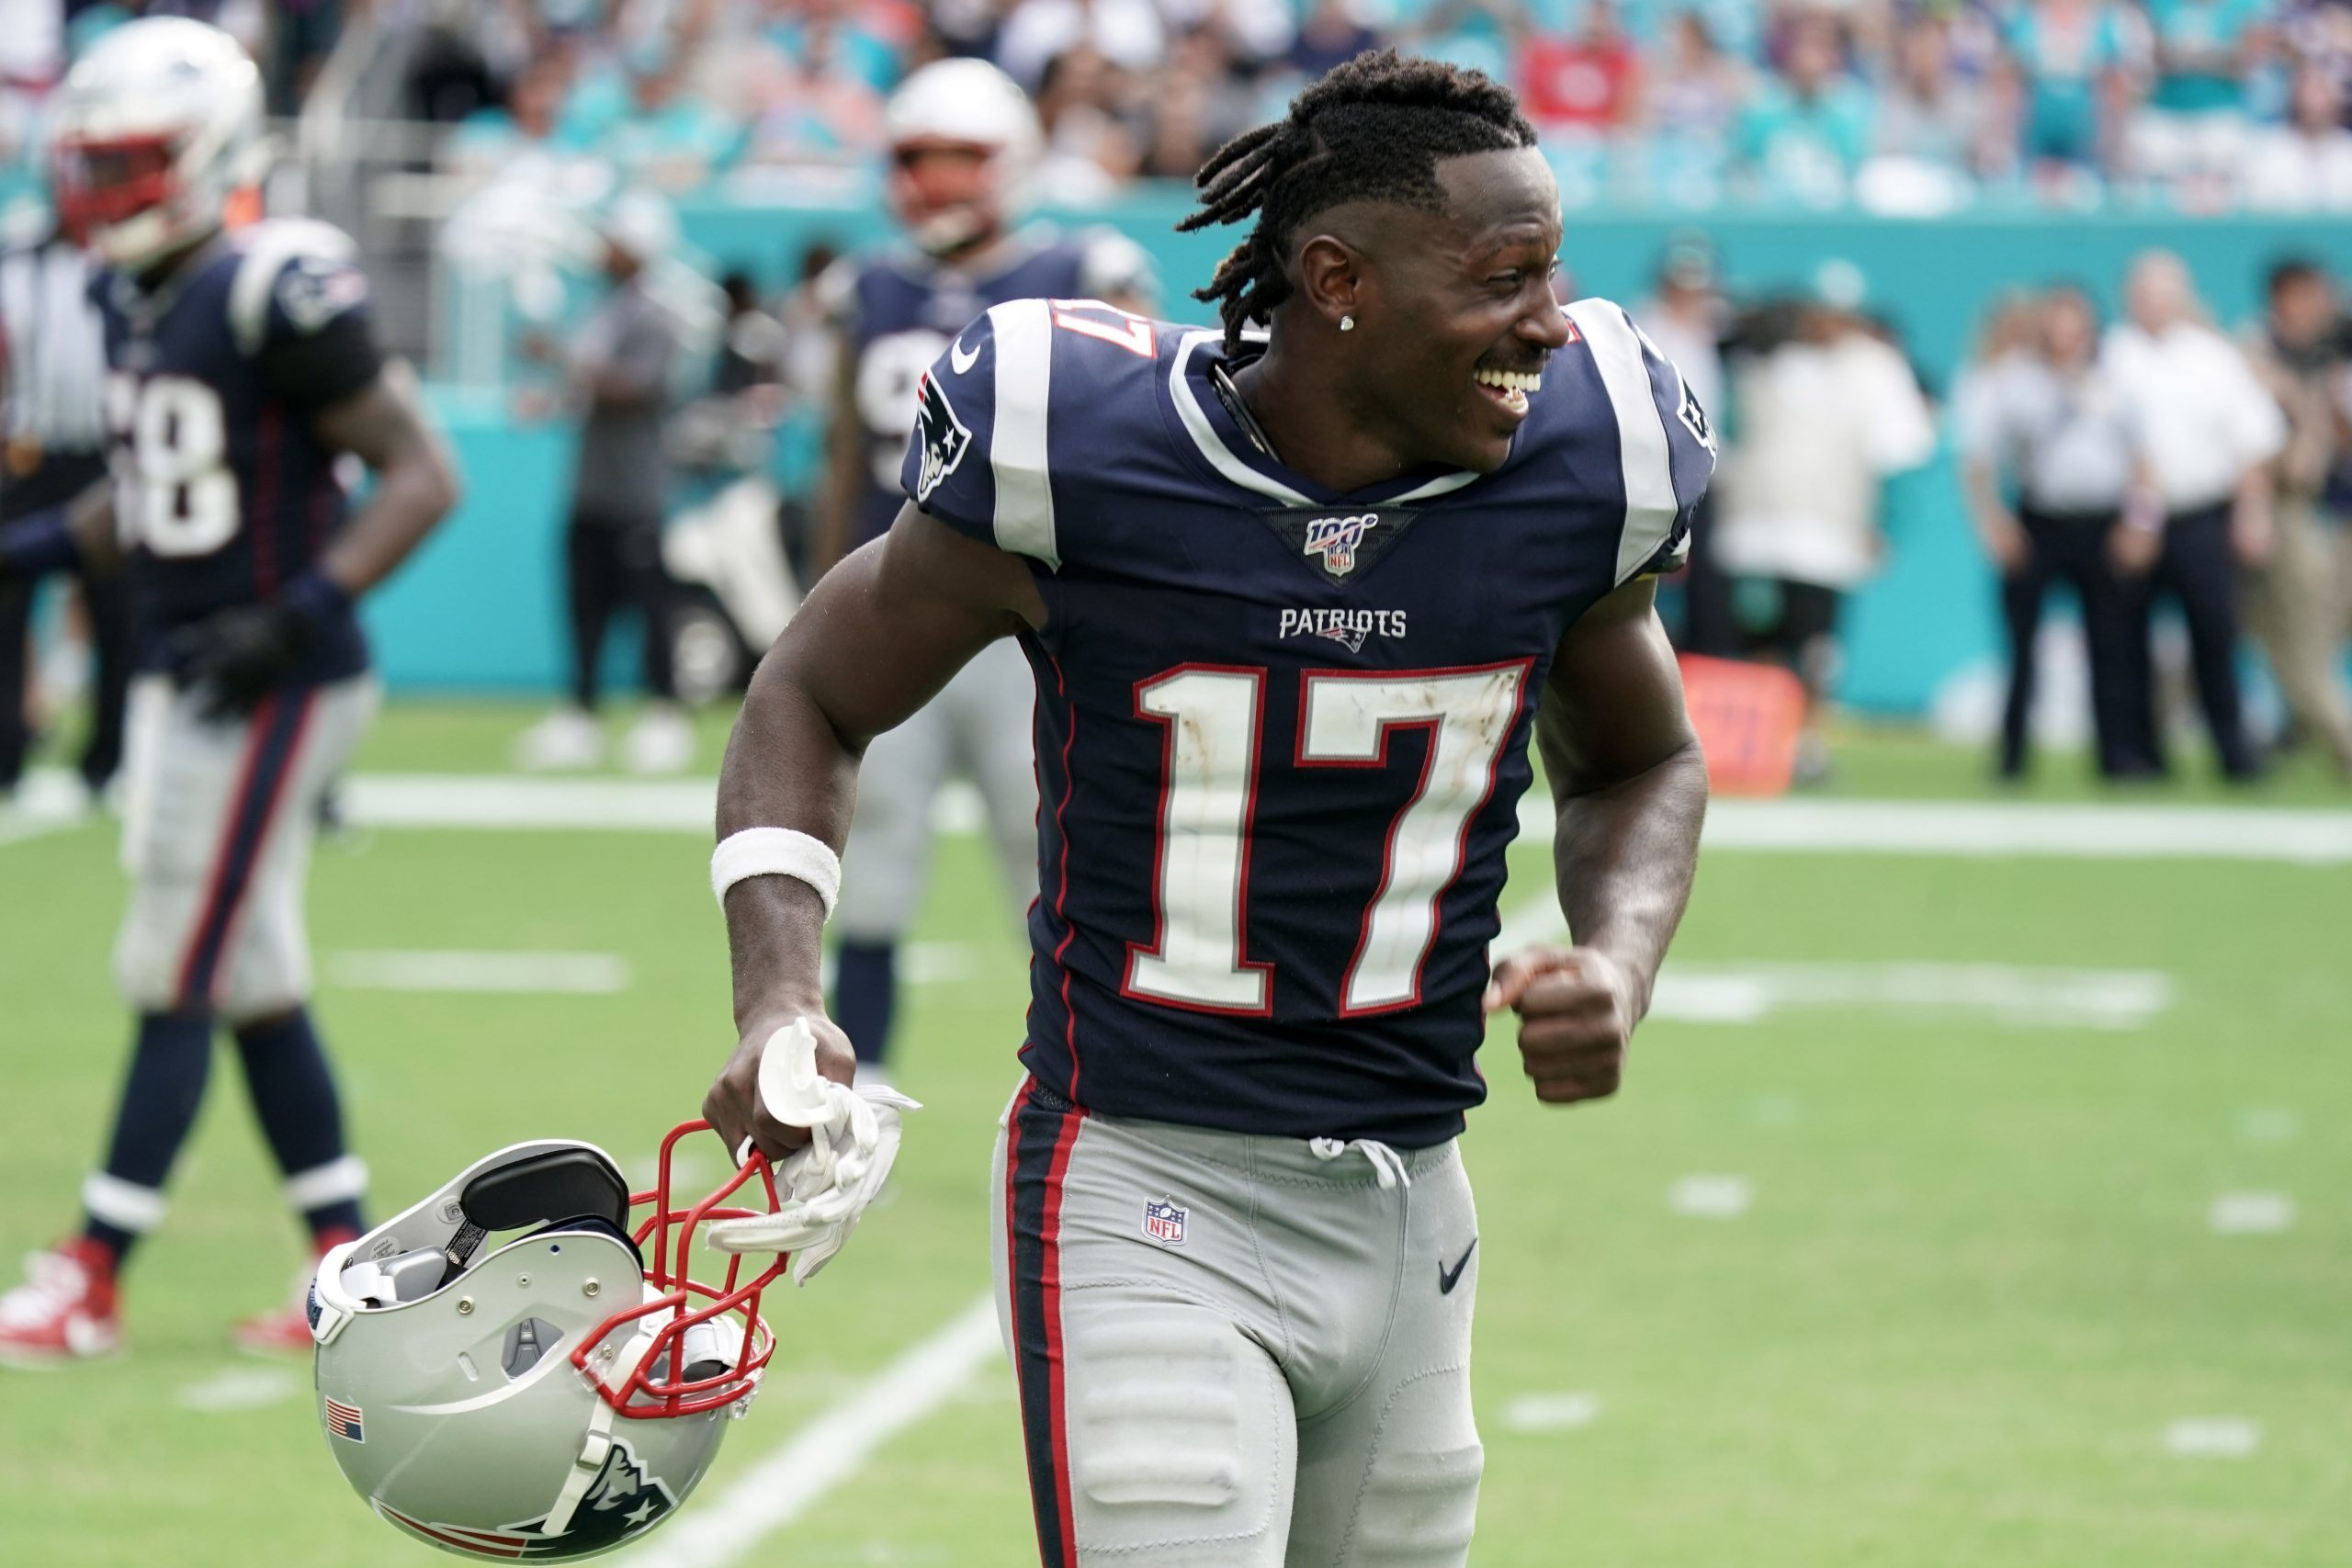 NFL Issues 8-Game Suspension to Antonio Brown